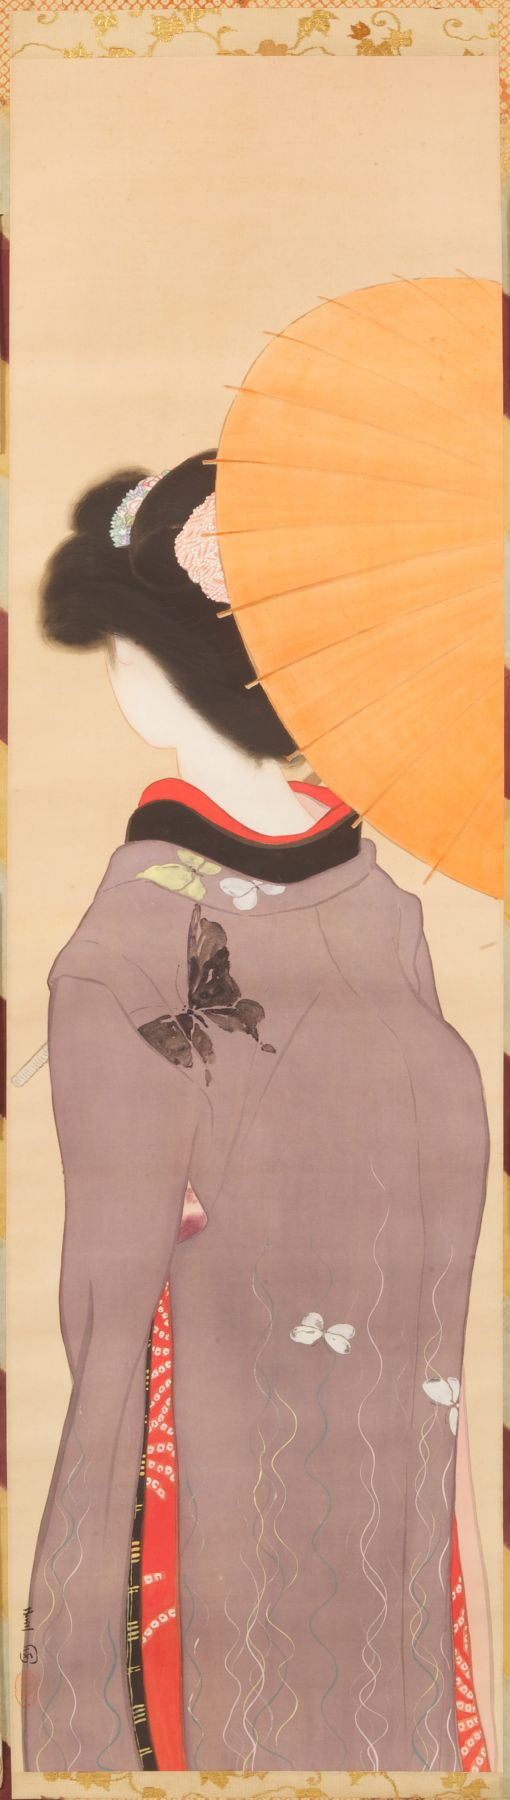 Ikeda Shoen (1886-1917), Young beauty with an umbrella seen from behind